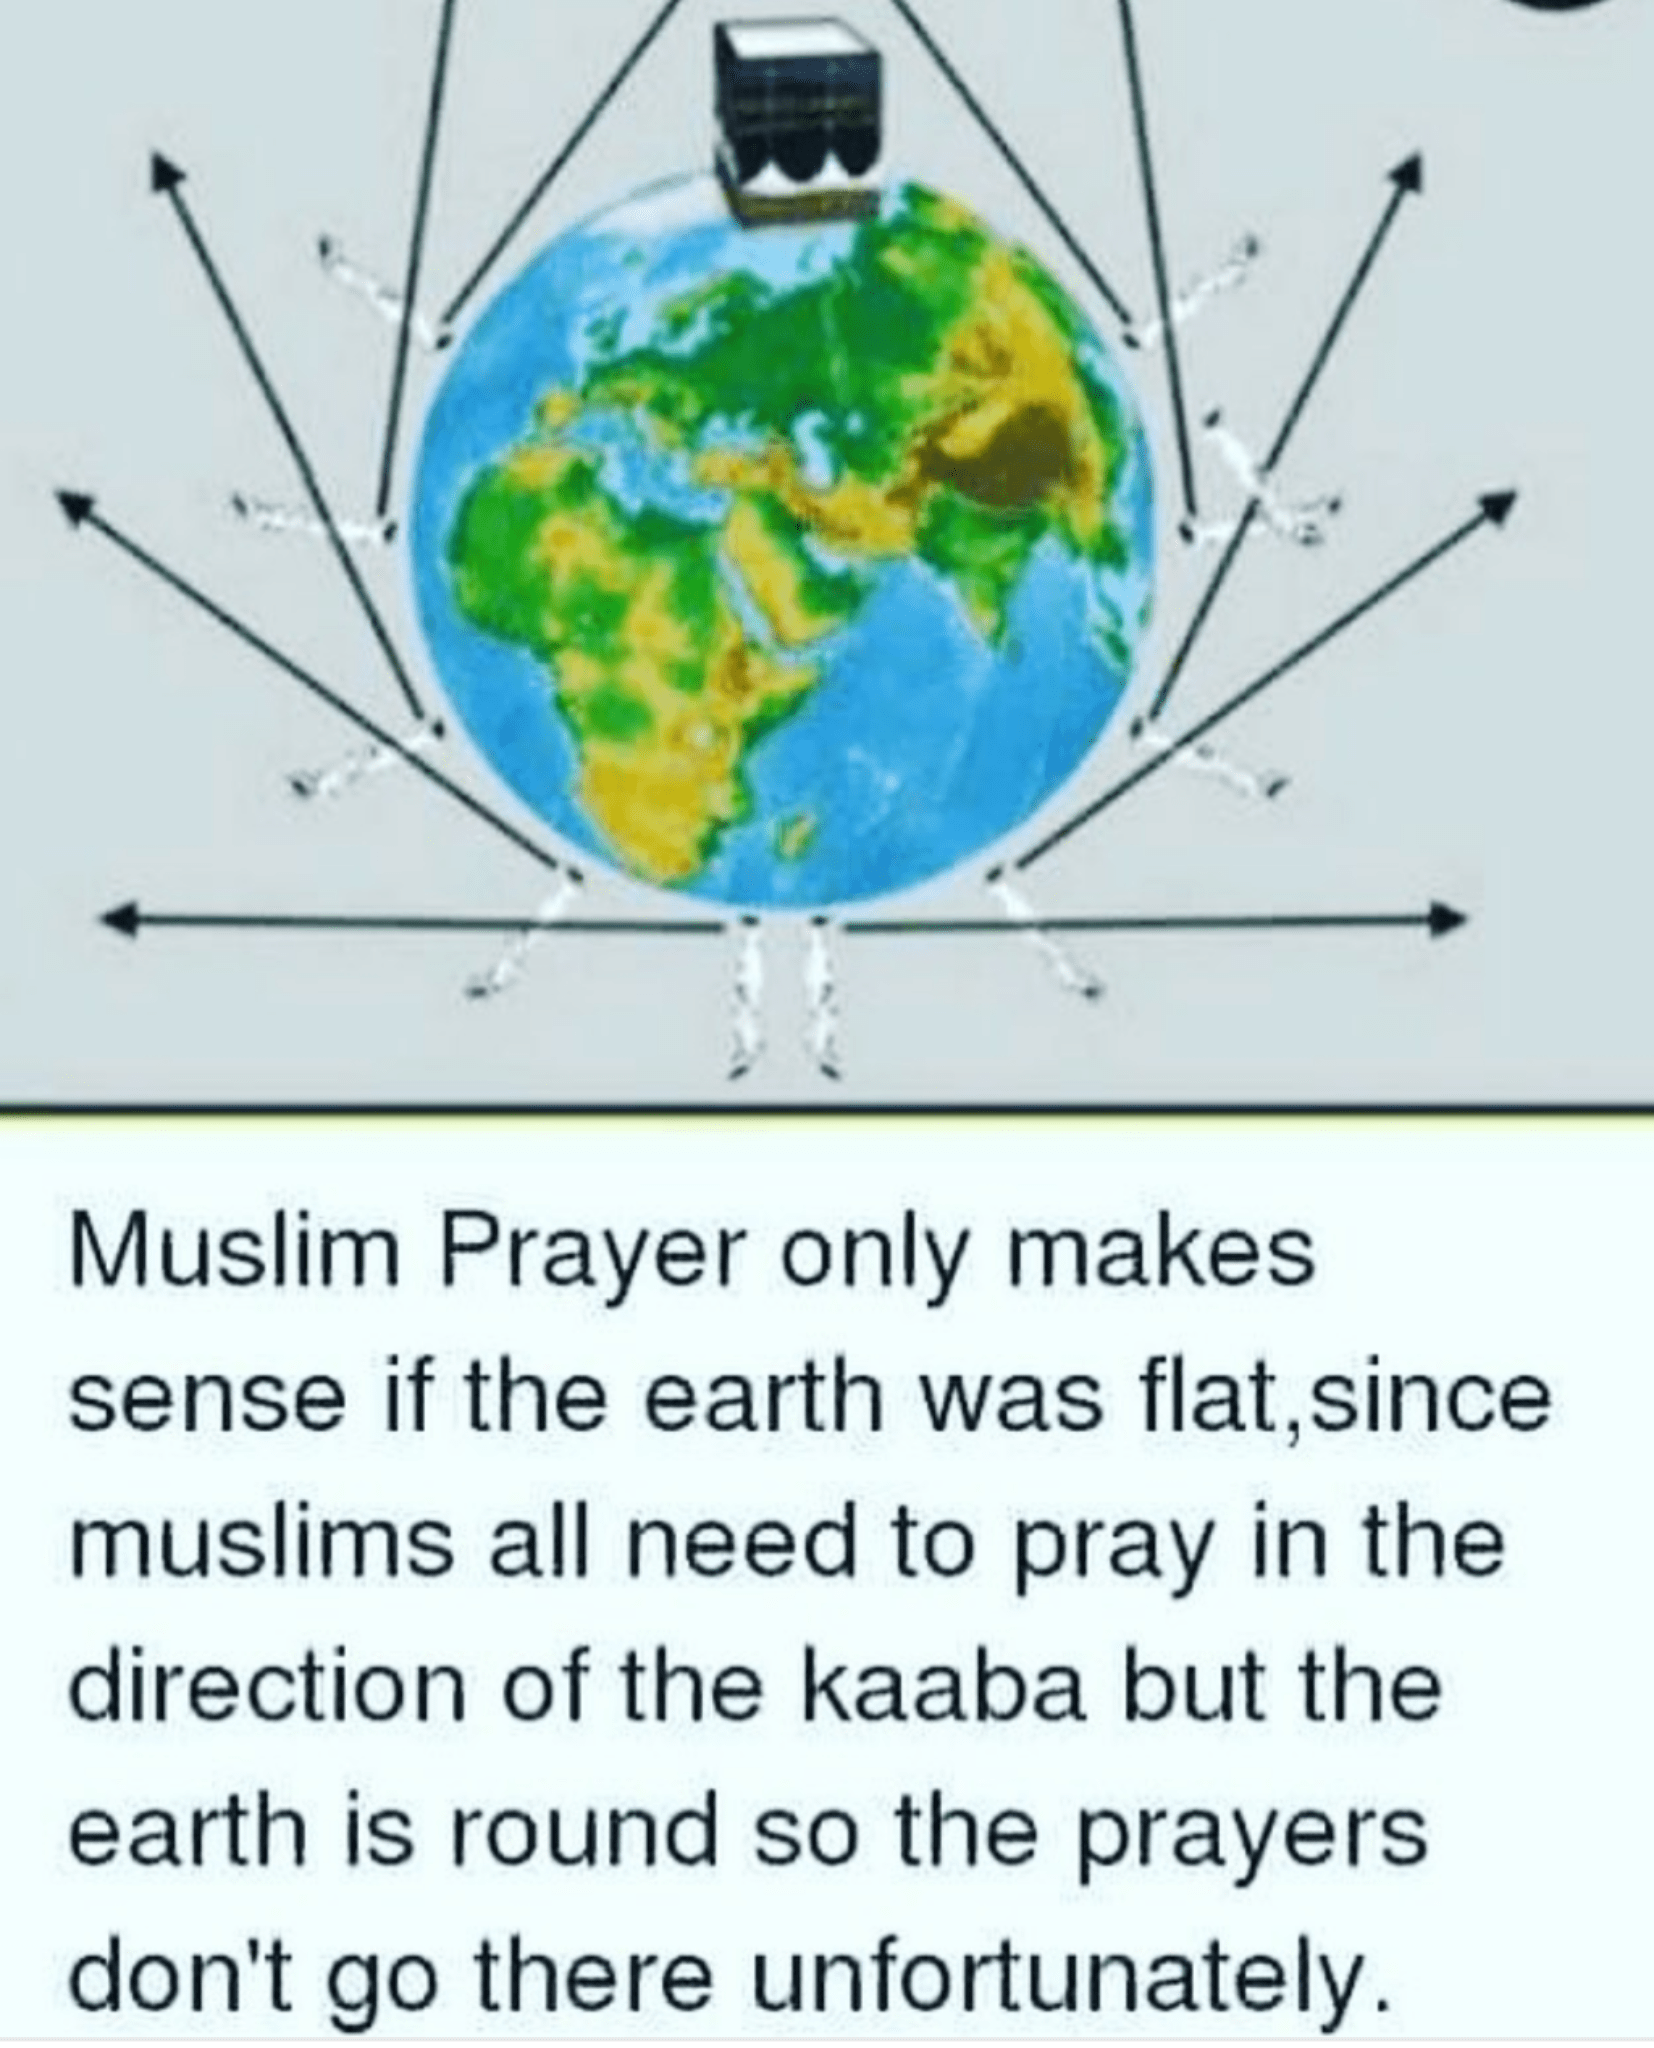 scientific error direction of praying earth is round flat